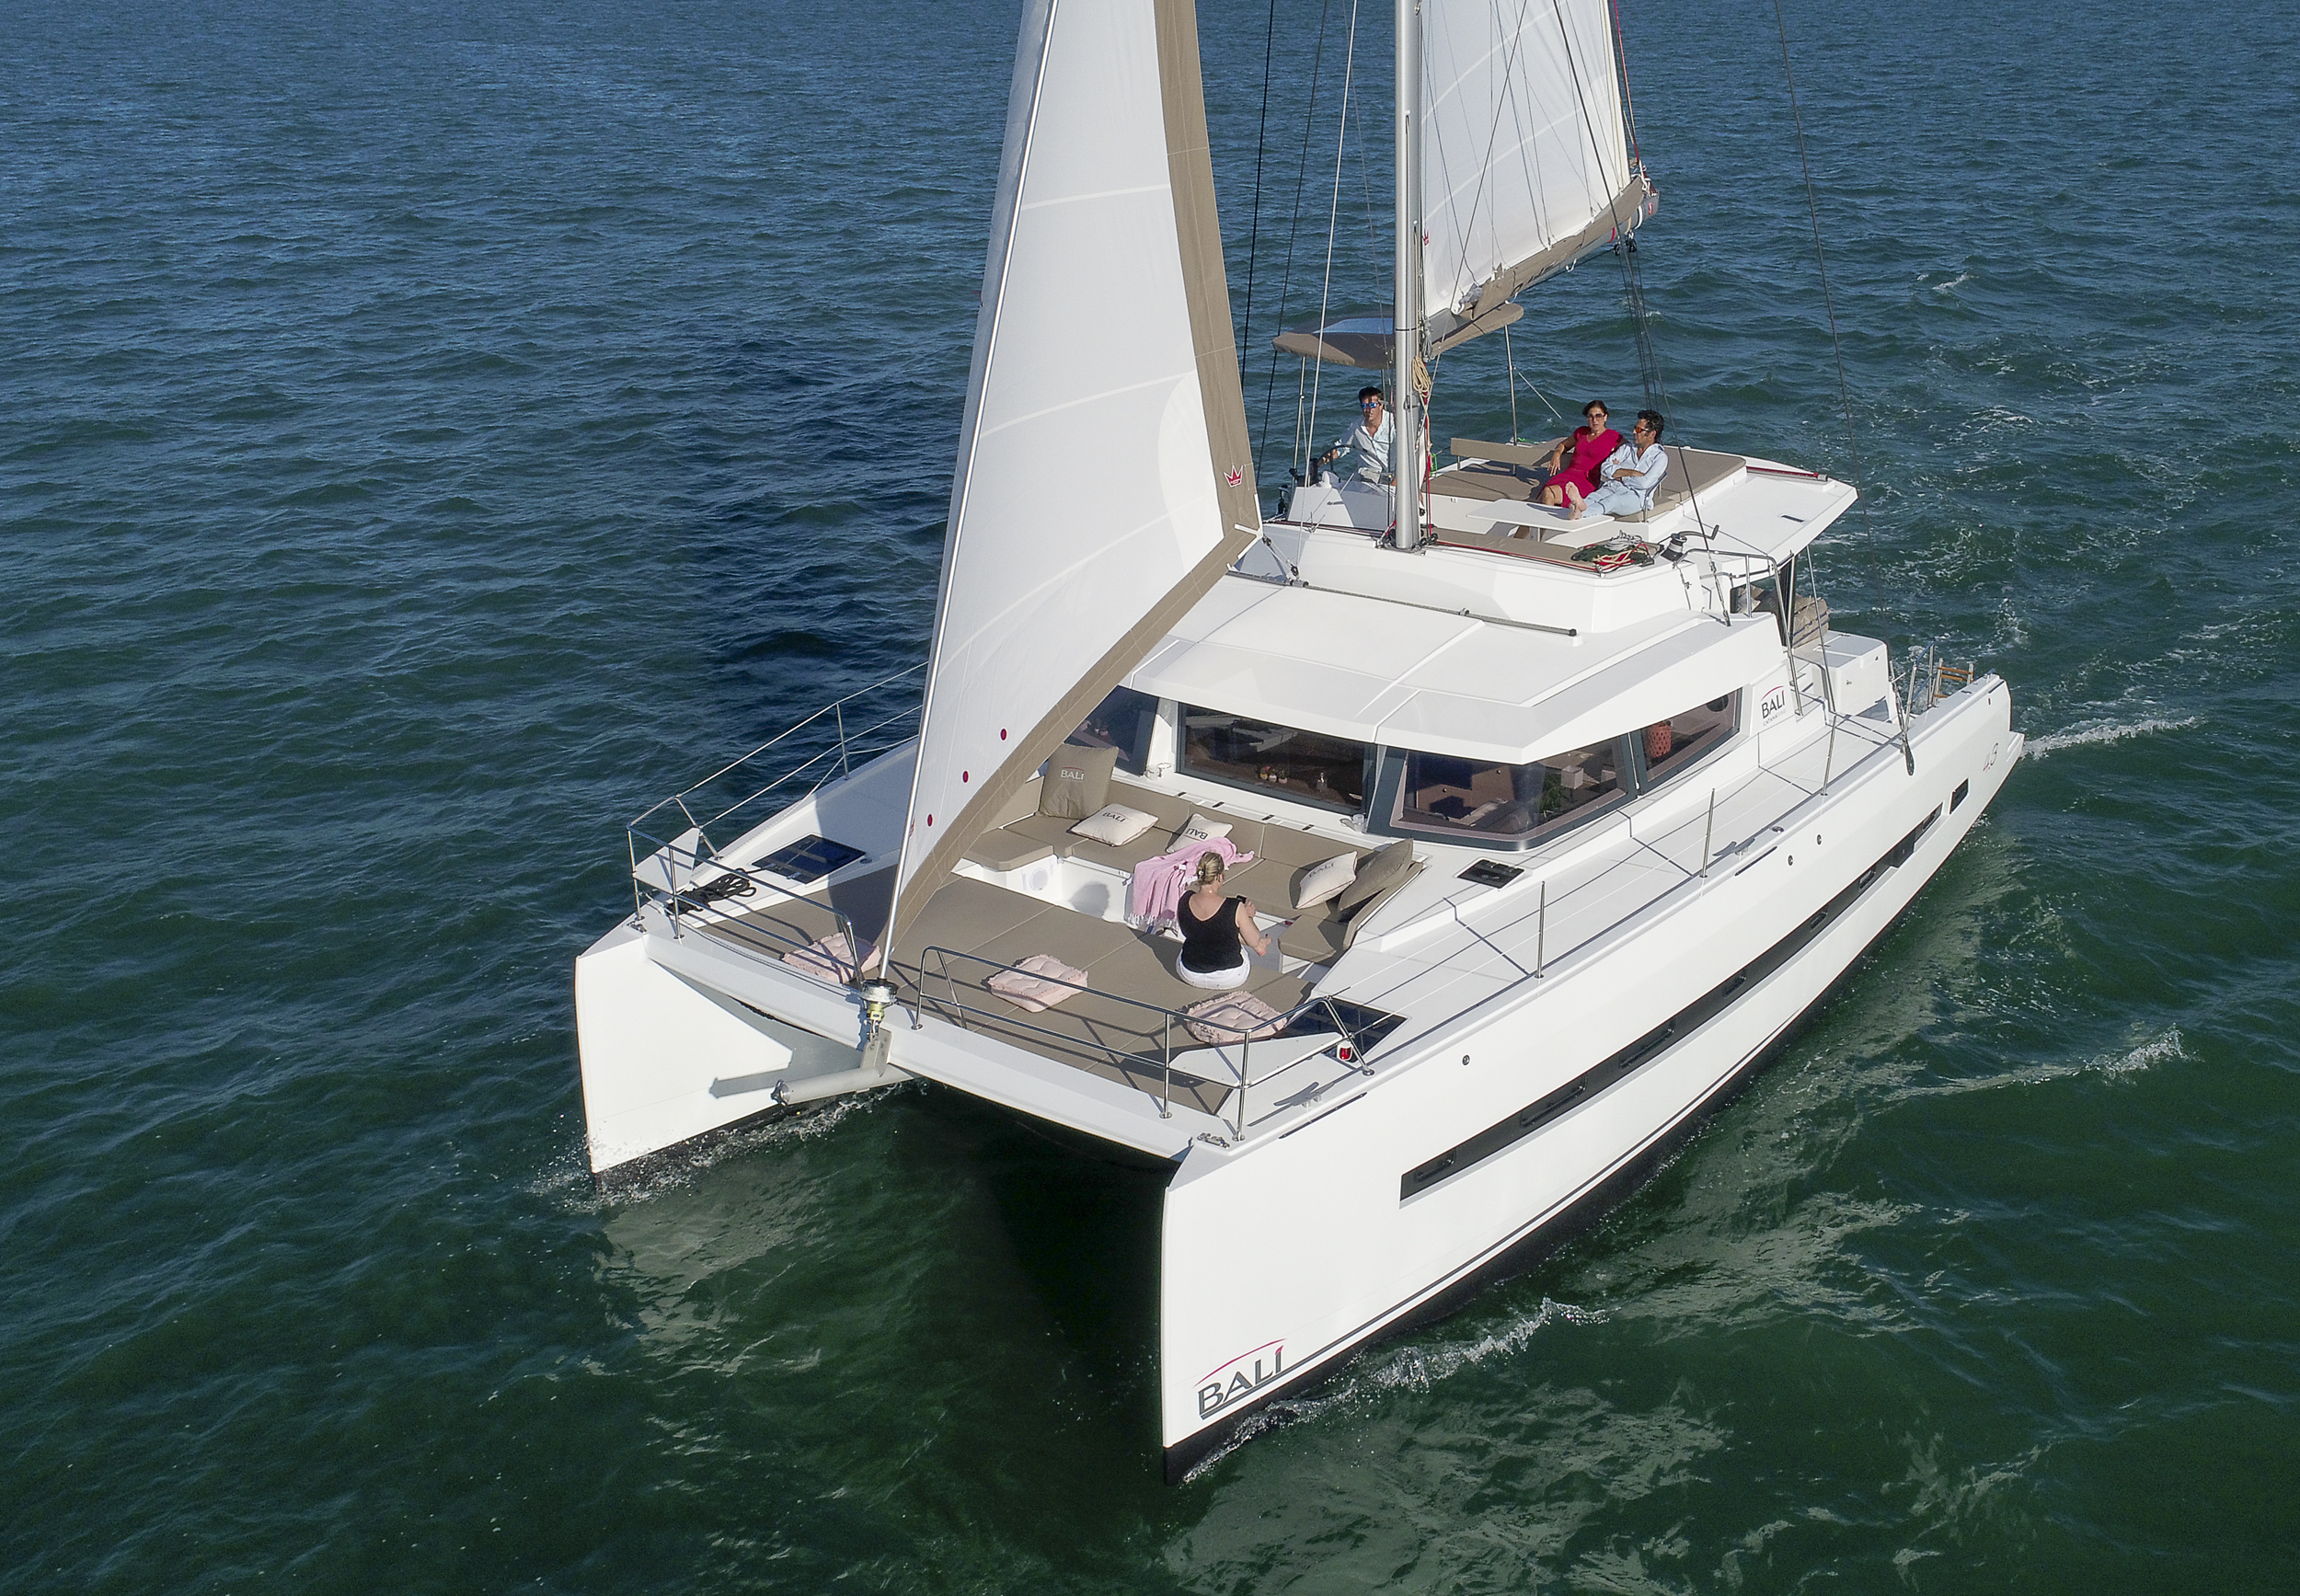 Bali 4.3 Wahi Nui Charter Yacht by Trend Travel Yachting